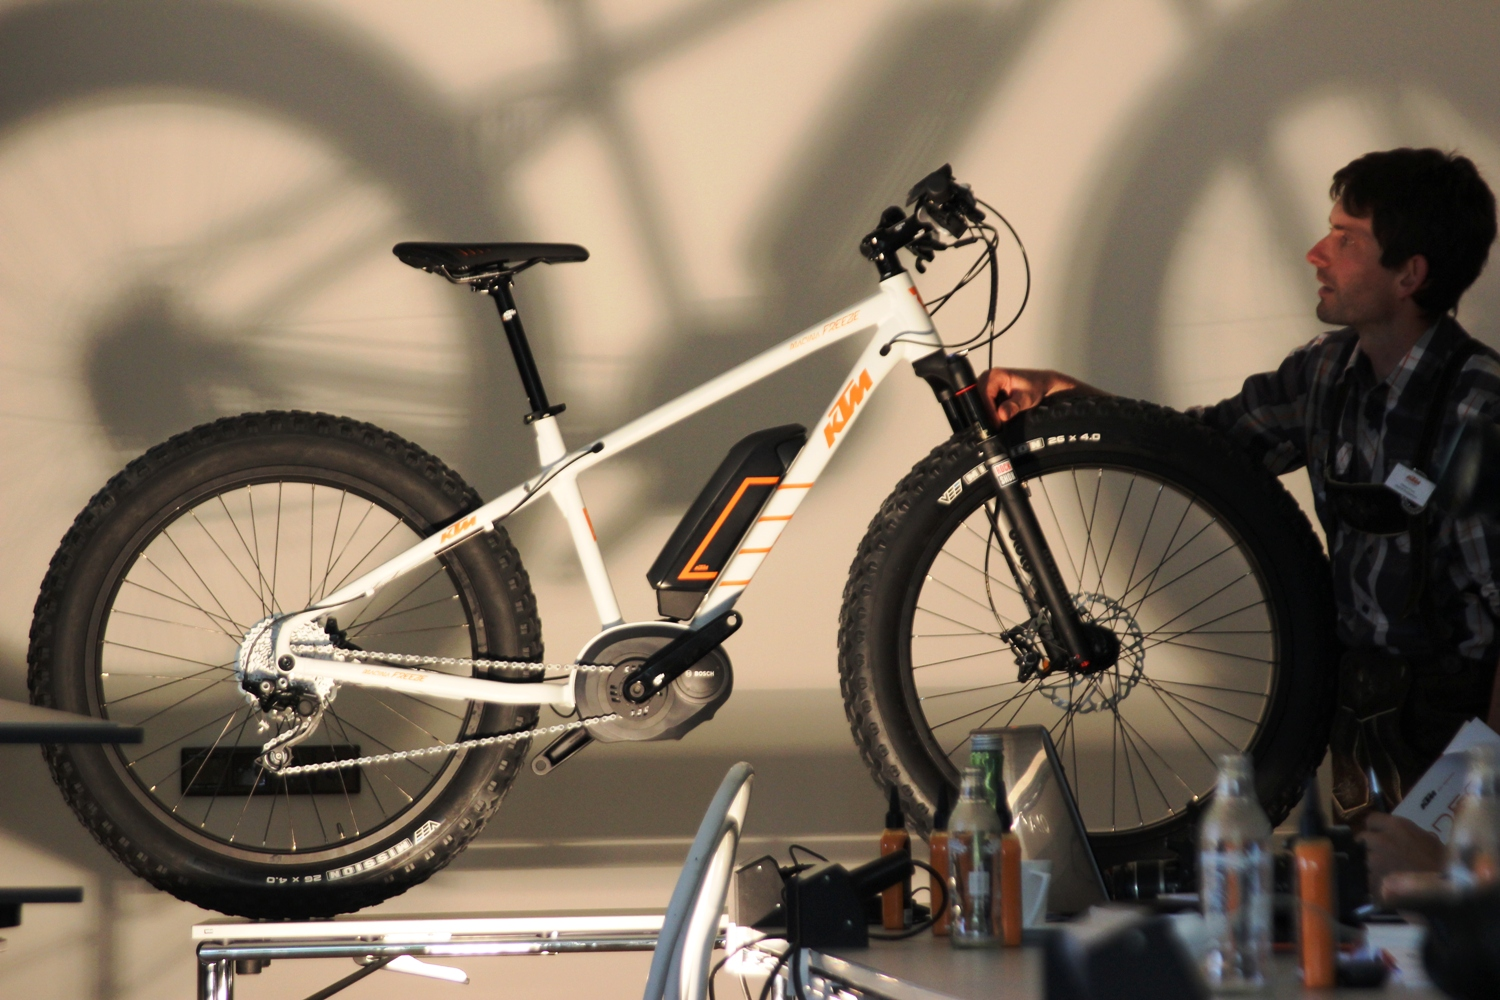 KTM Macina Freeze - avagy Fatrat GoEs